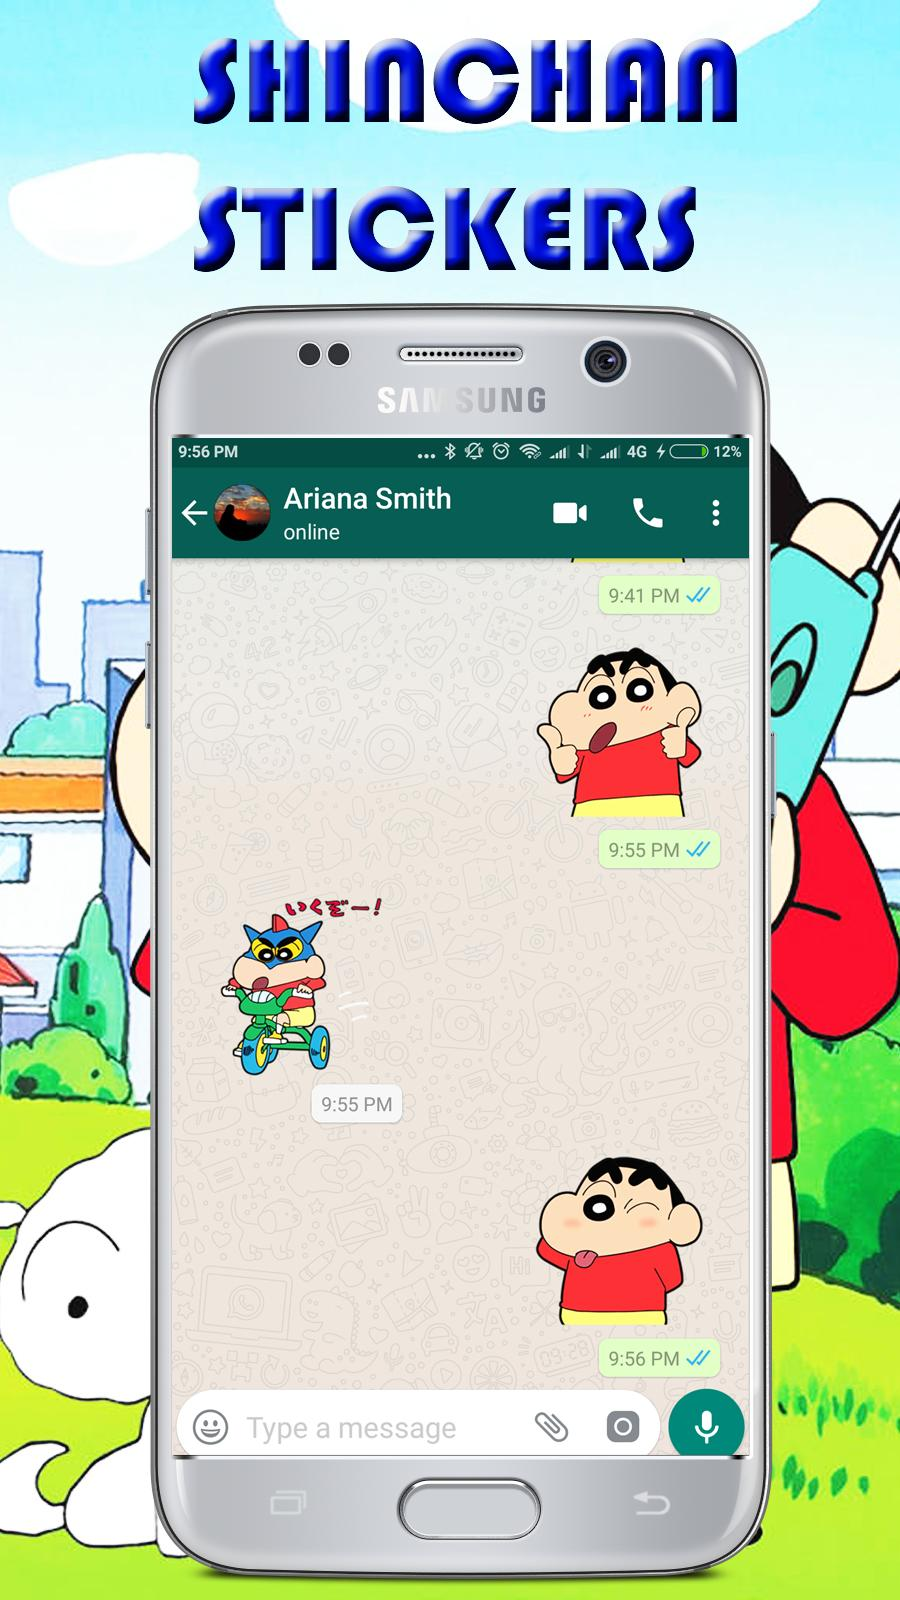 Shinchan stickers for whatsapp wastickerapps for android apk.